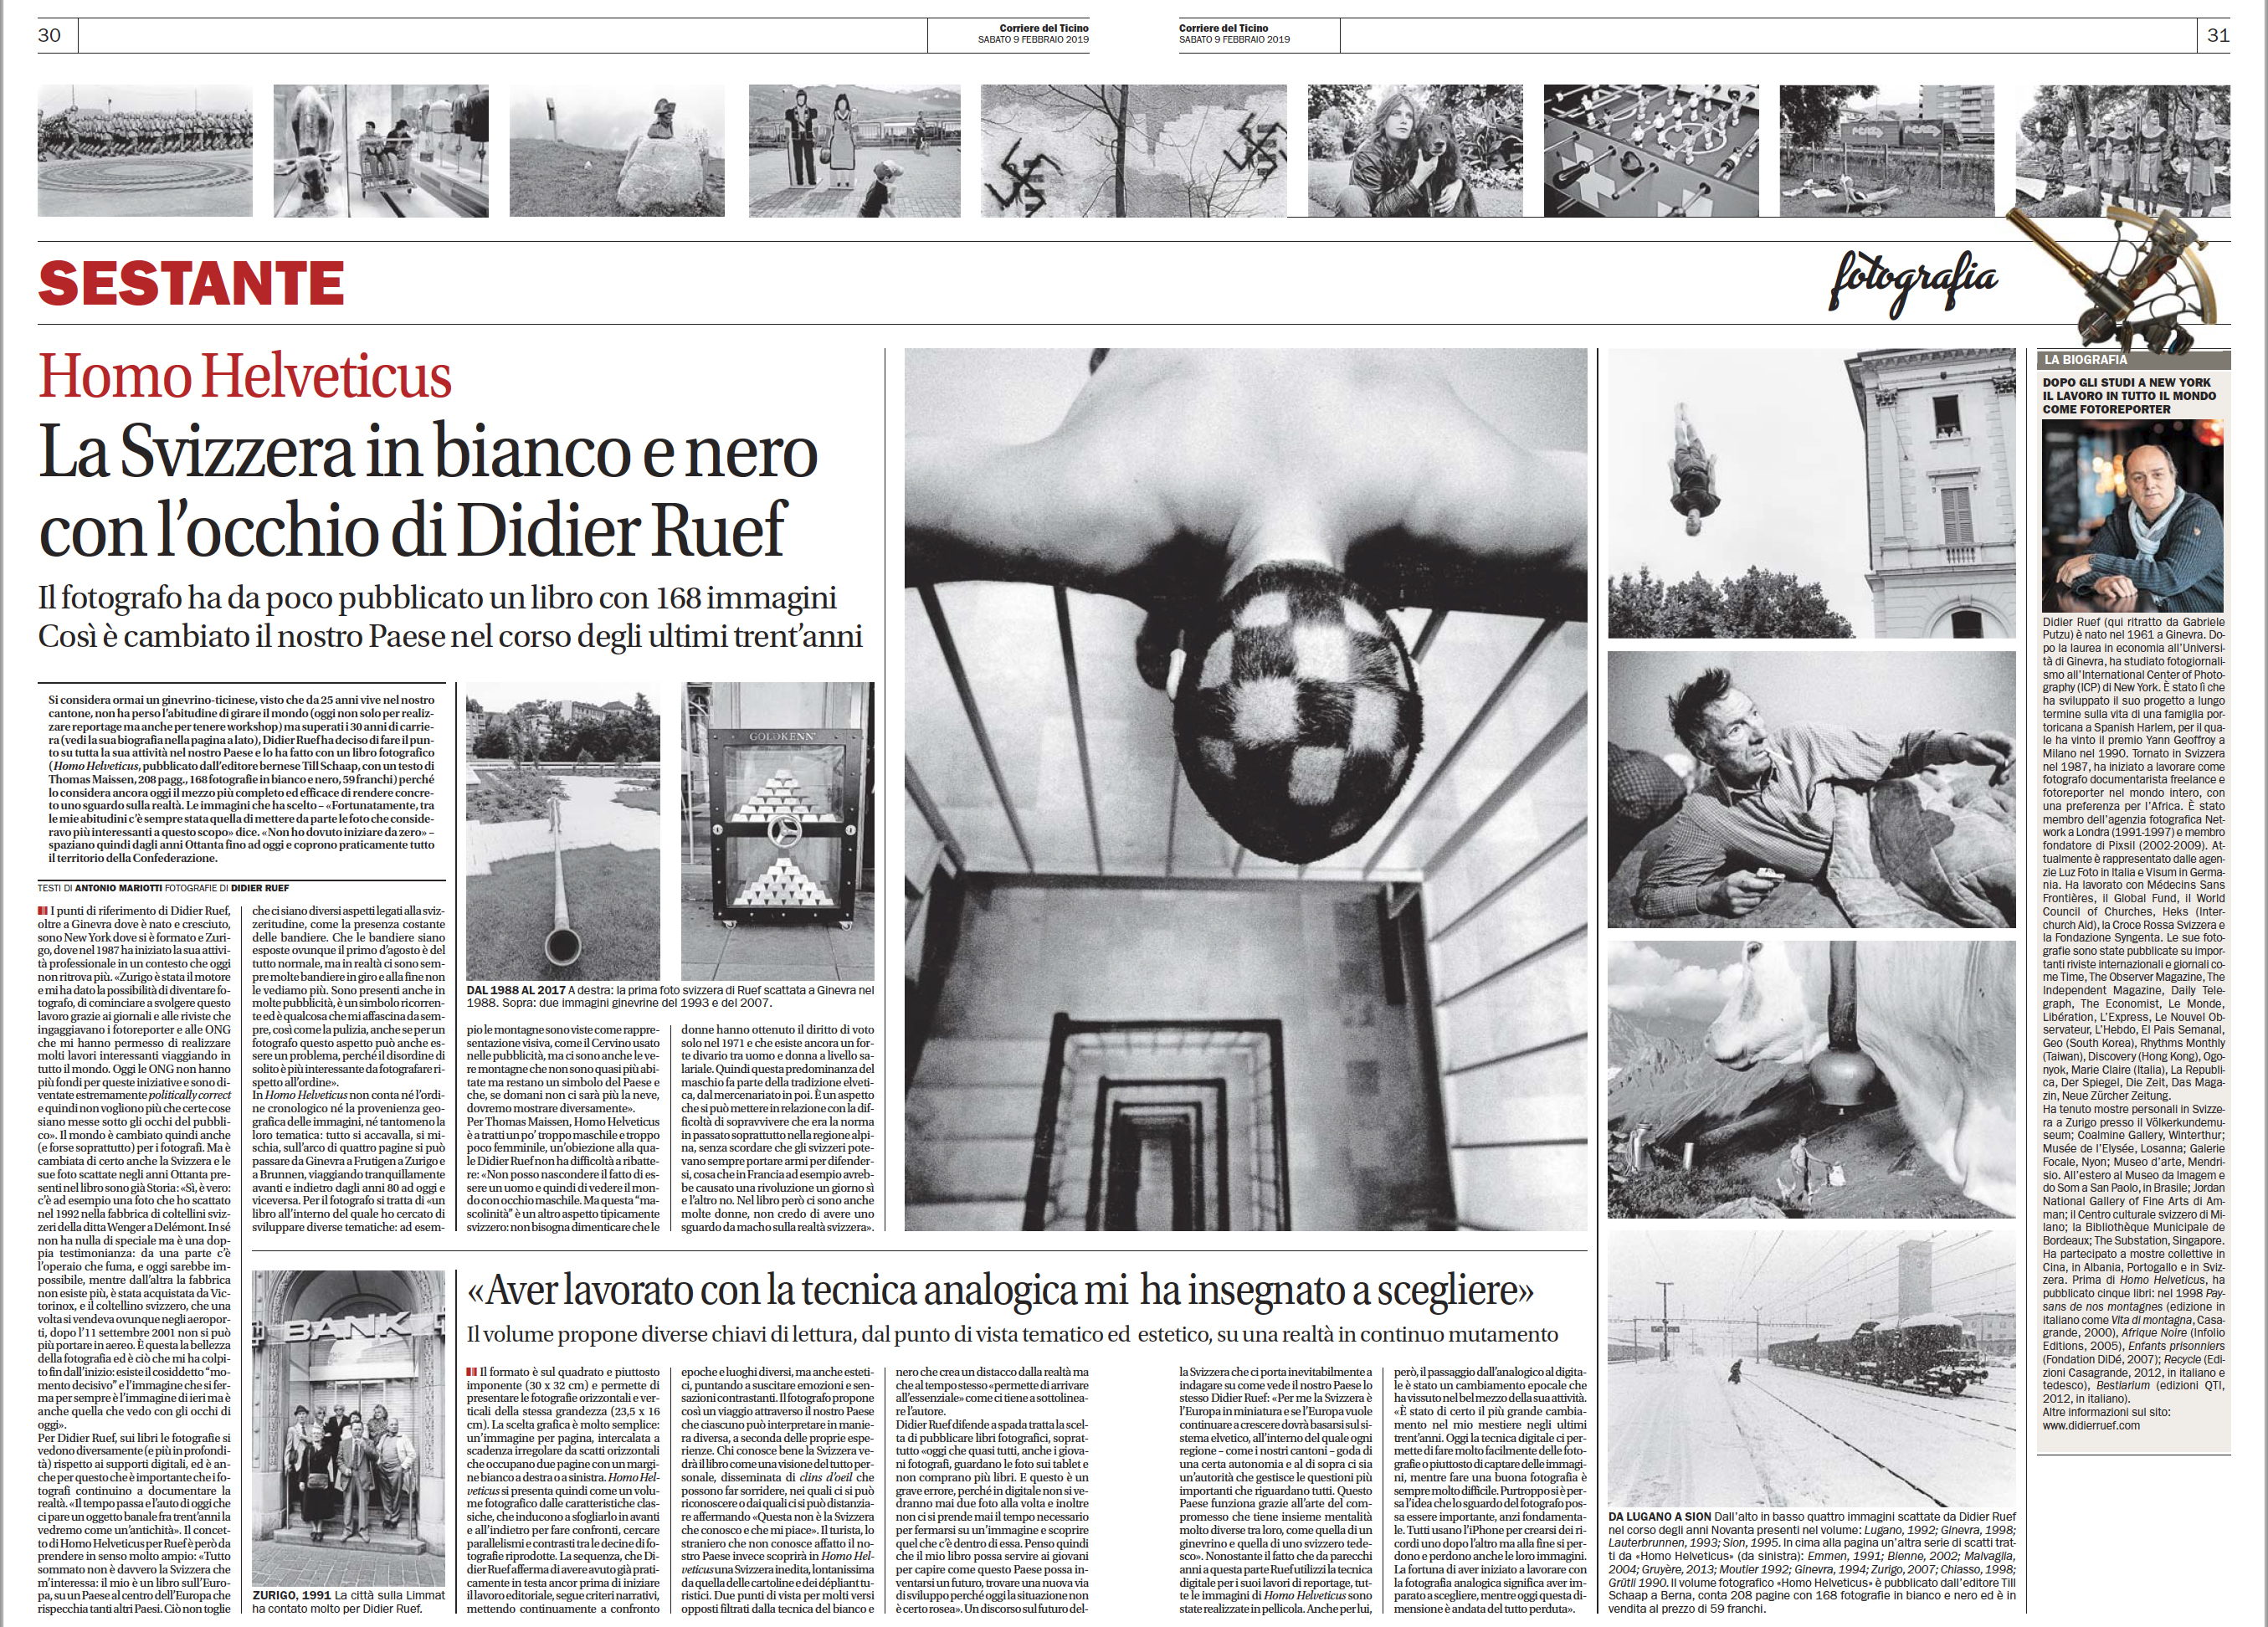 Corriere del Ticino. February 9th, 2019. Pages 30-31 (click image to enlarge)